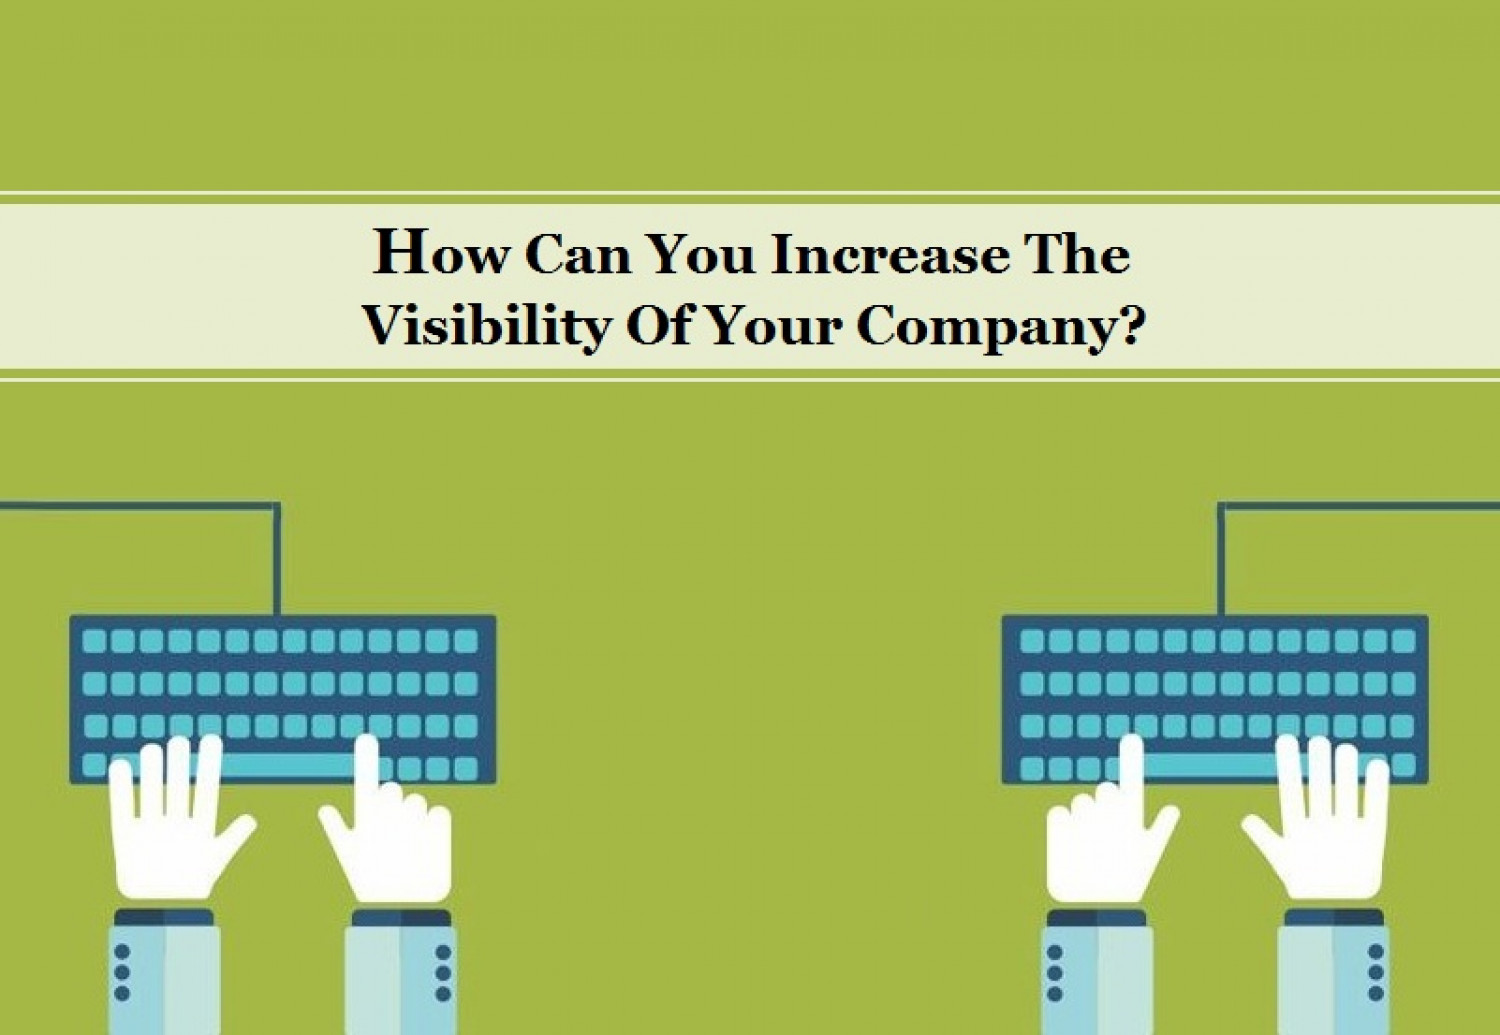 How Can You Increase The Visibility Of Your Company? Infographic